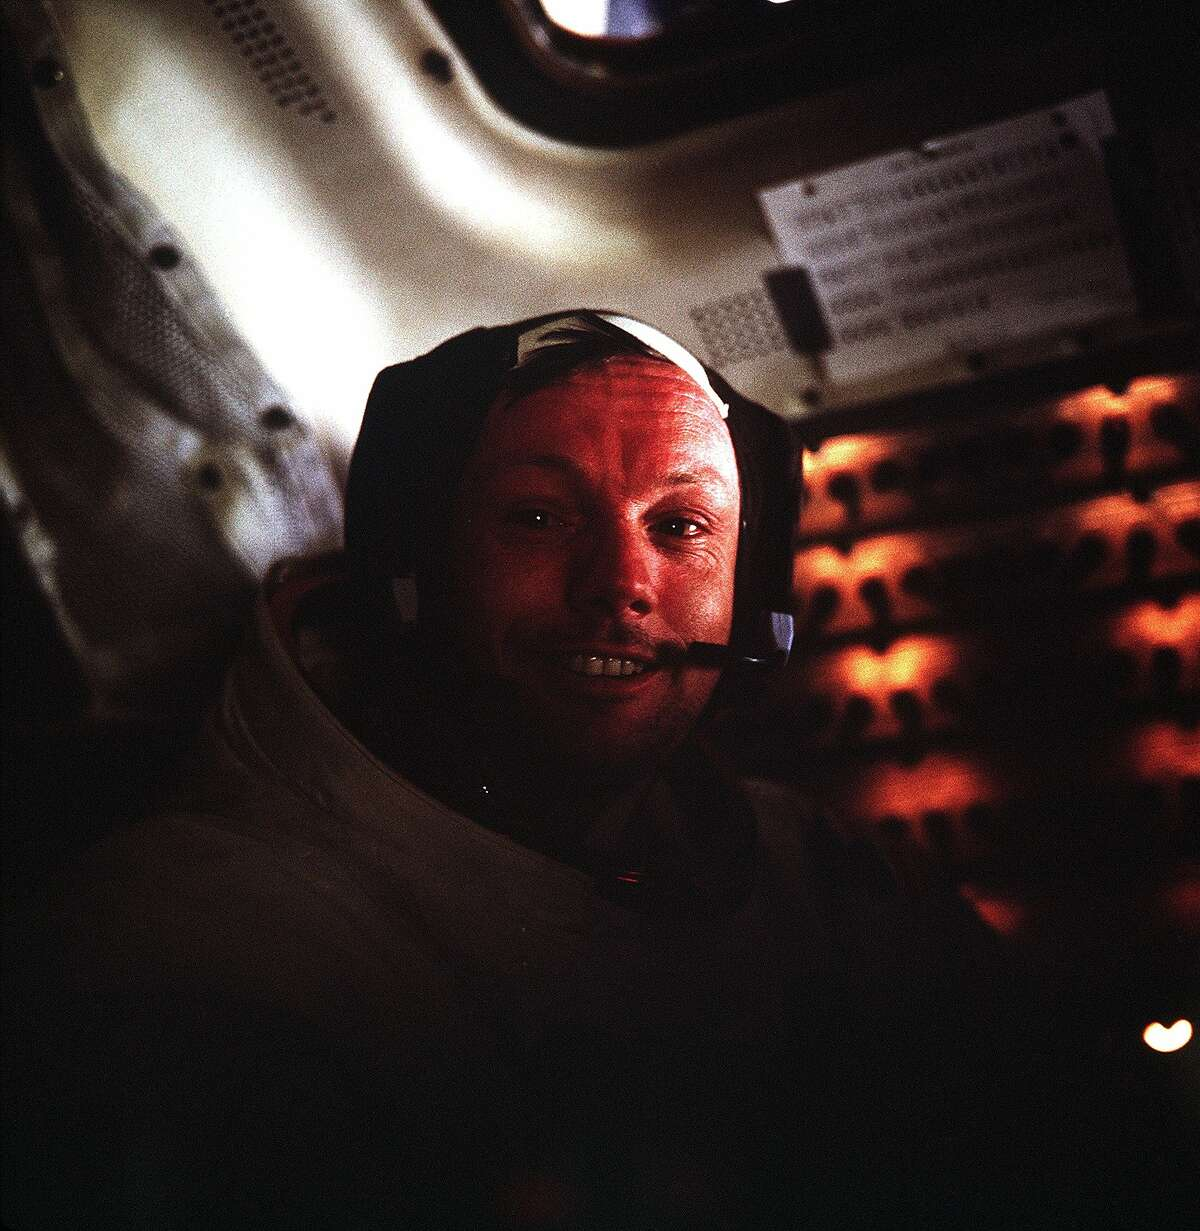 (20 July 1969) --- This photograph of astronaut Neil A. Armstrong, Apollo 11 commander, was taken inside the Lunar Module (LM) while the LM rested on the lunar surface. Astronauts Armstrong and Edwin E. Aldrin Jr., lunar module pilot, had already completed their historic extravehicular activity (EVA) when this picture was made. Astronaut Michael Collins, command module pilot, remained with the Command and Service Modules (CSM) in lunar orbit while Armstrong and Aldrin explored the moon's surface.